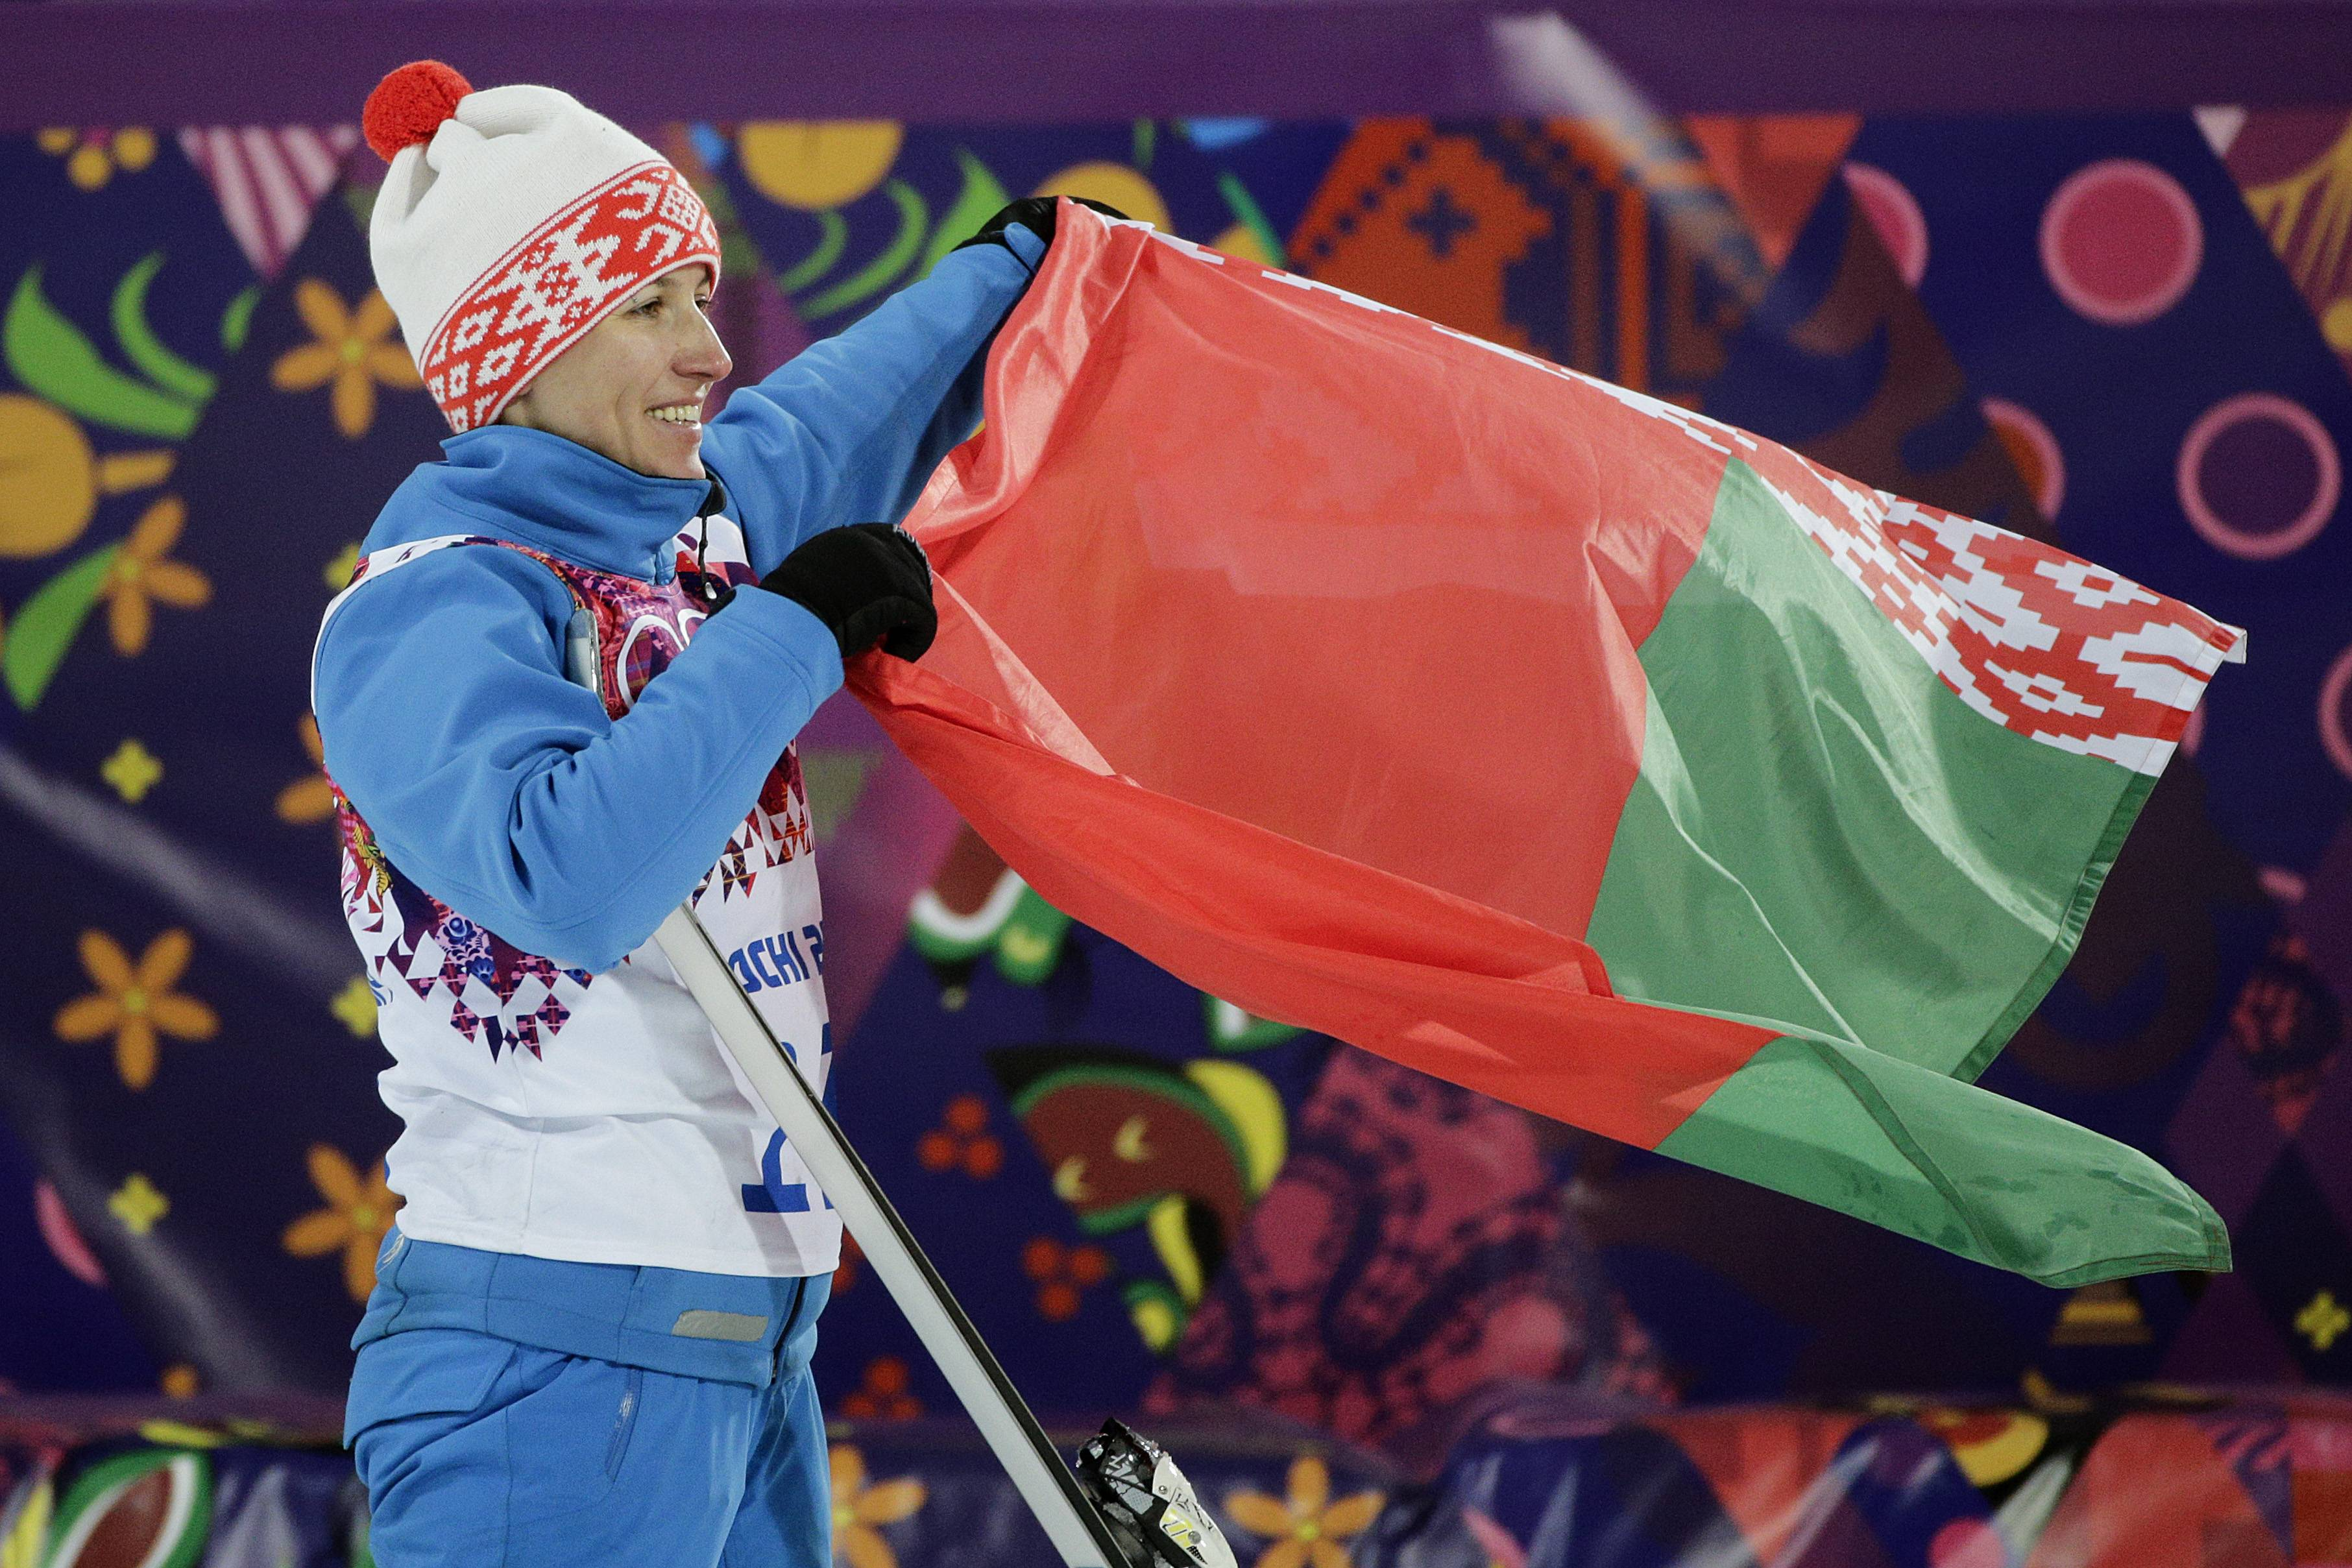 Gold medalist Alla Tsuper, of Belarus, poses with a Belarusian flag after a flower ceremony for the women's freestyle skiing aerials final.